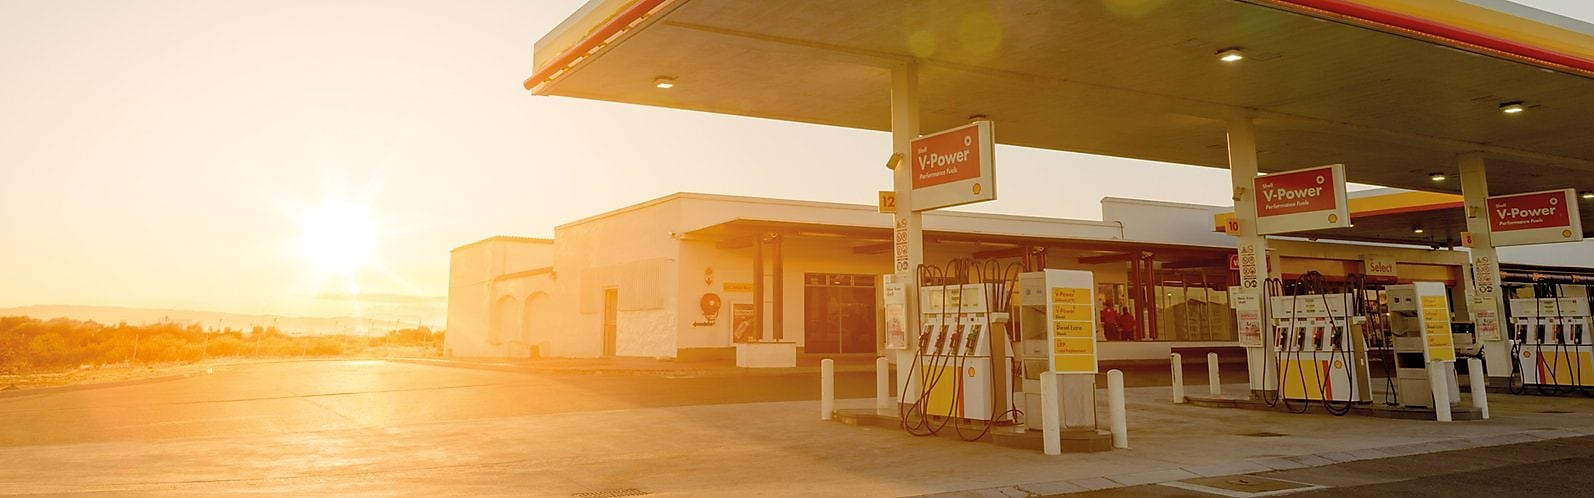 Sun rising behind a Shell station forecourt